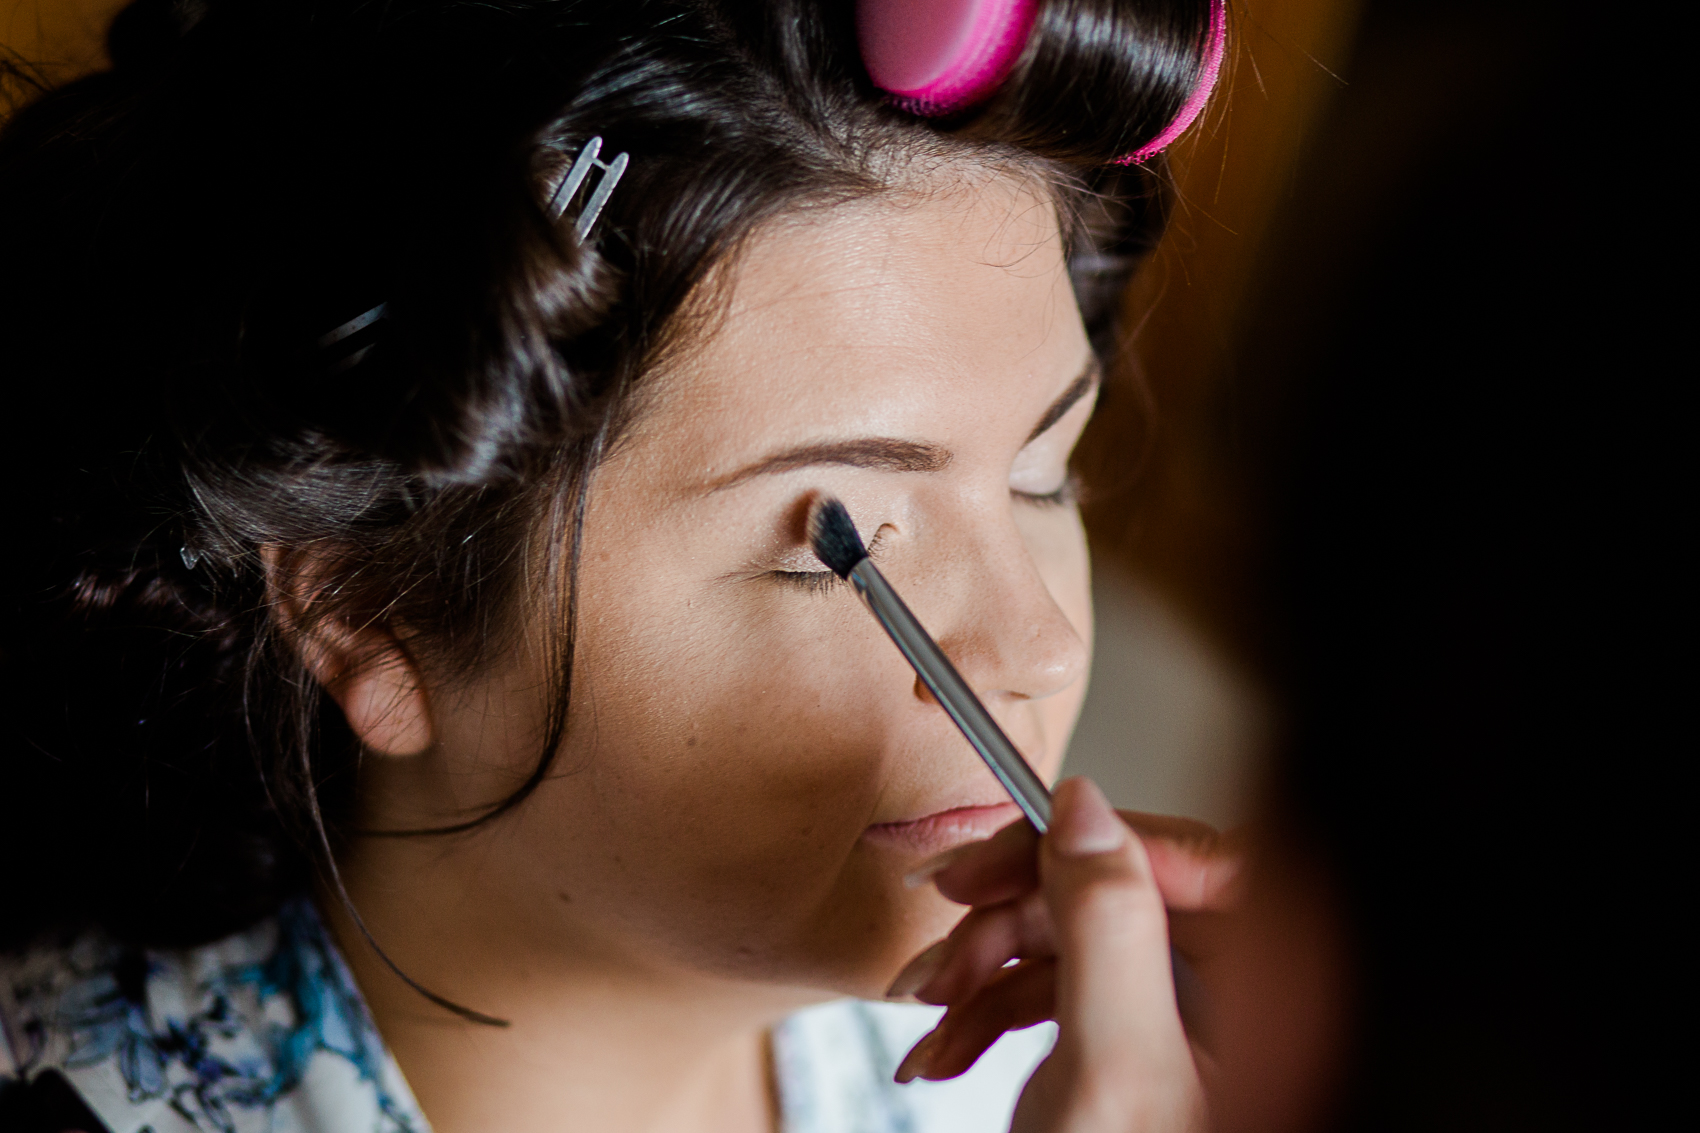 Eyeshadow being applied on bride